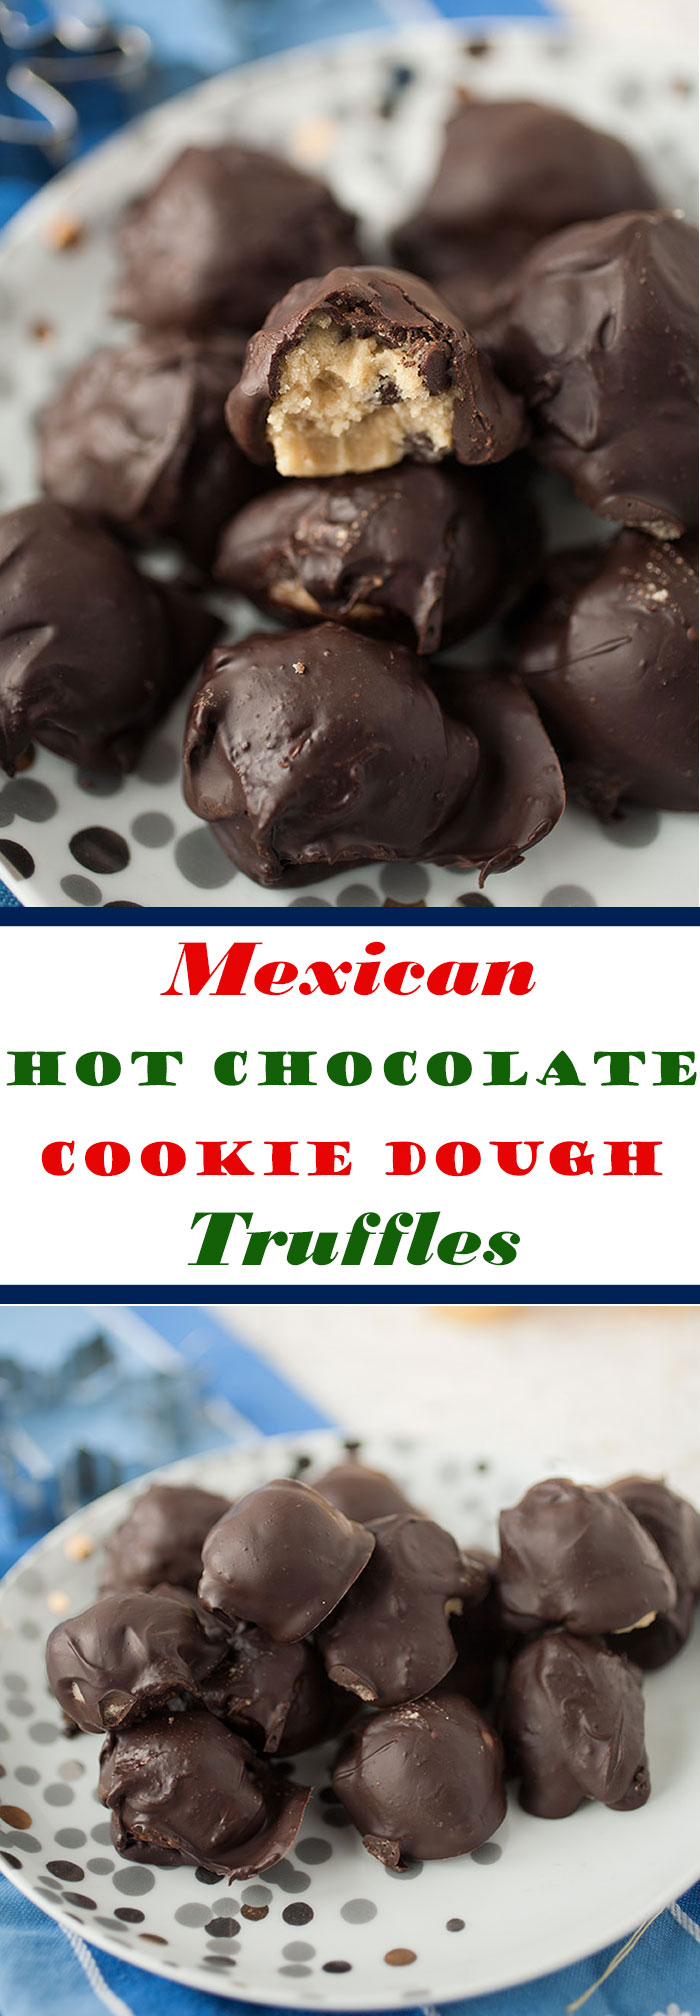 Easy to make no-bake cookie dough balls covered in cinnamon-flavored chocolate for the perfect, craveable holiday gift!